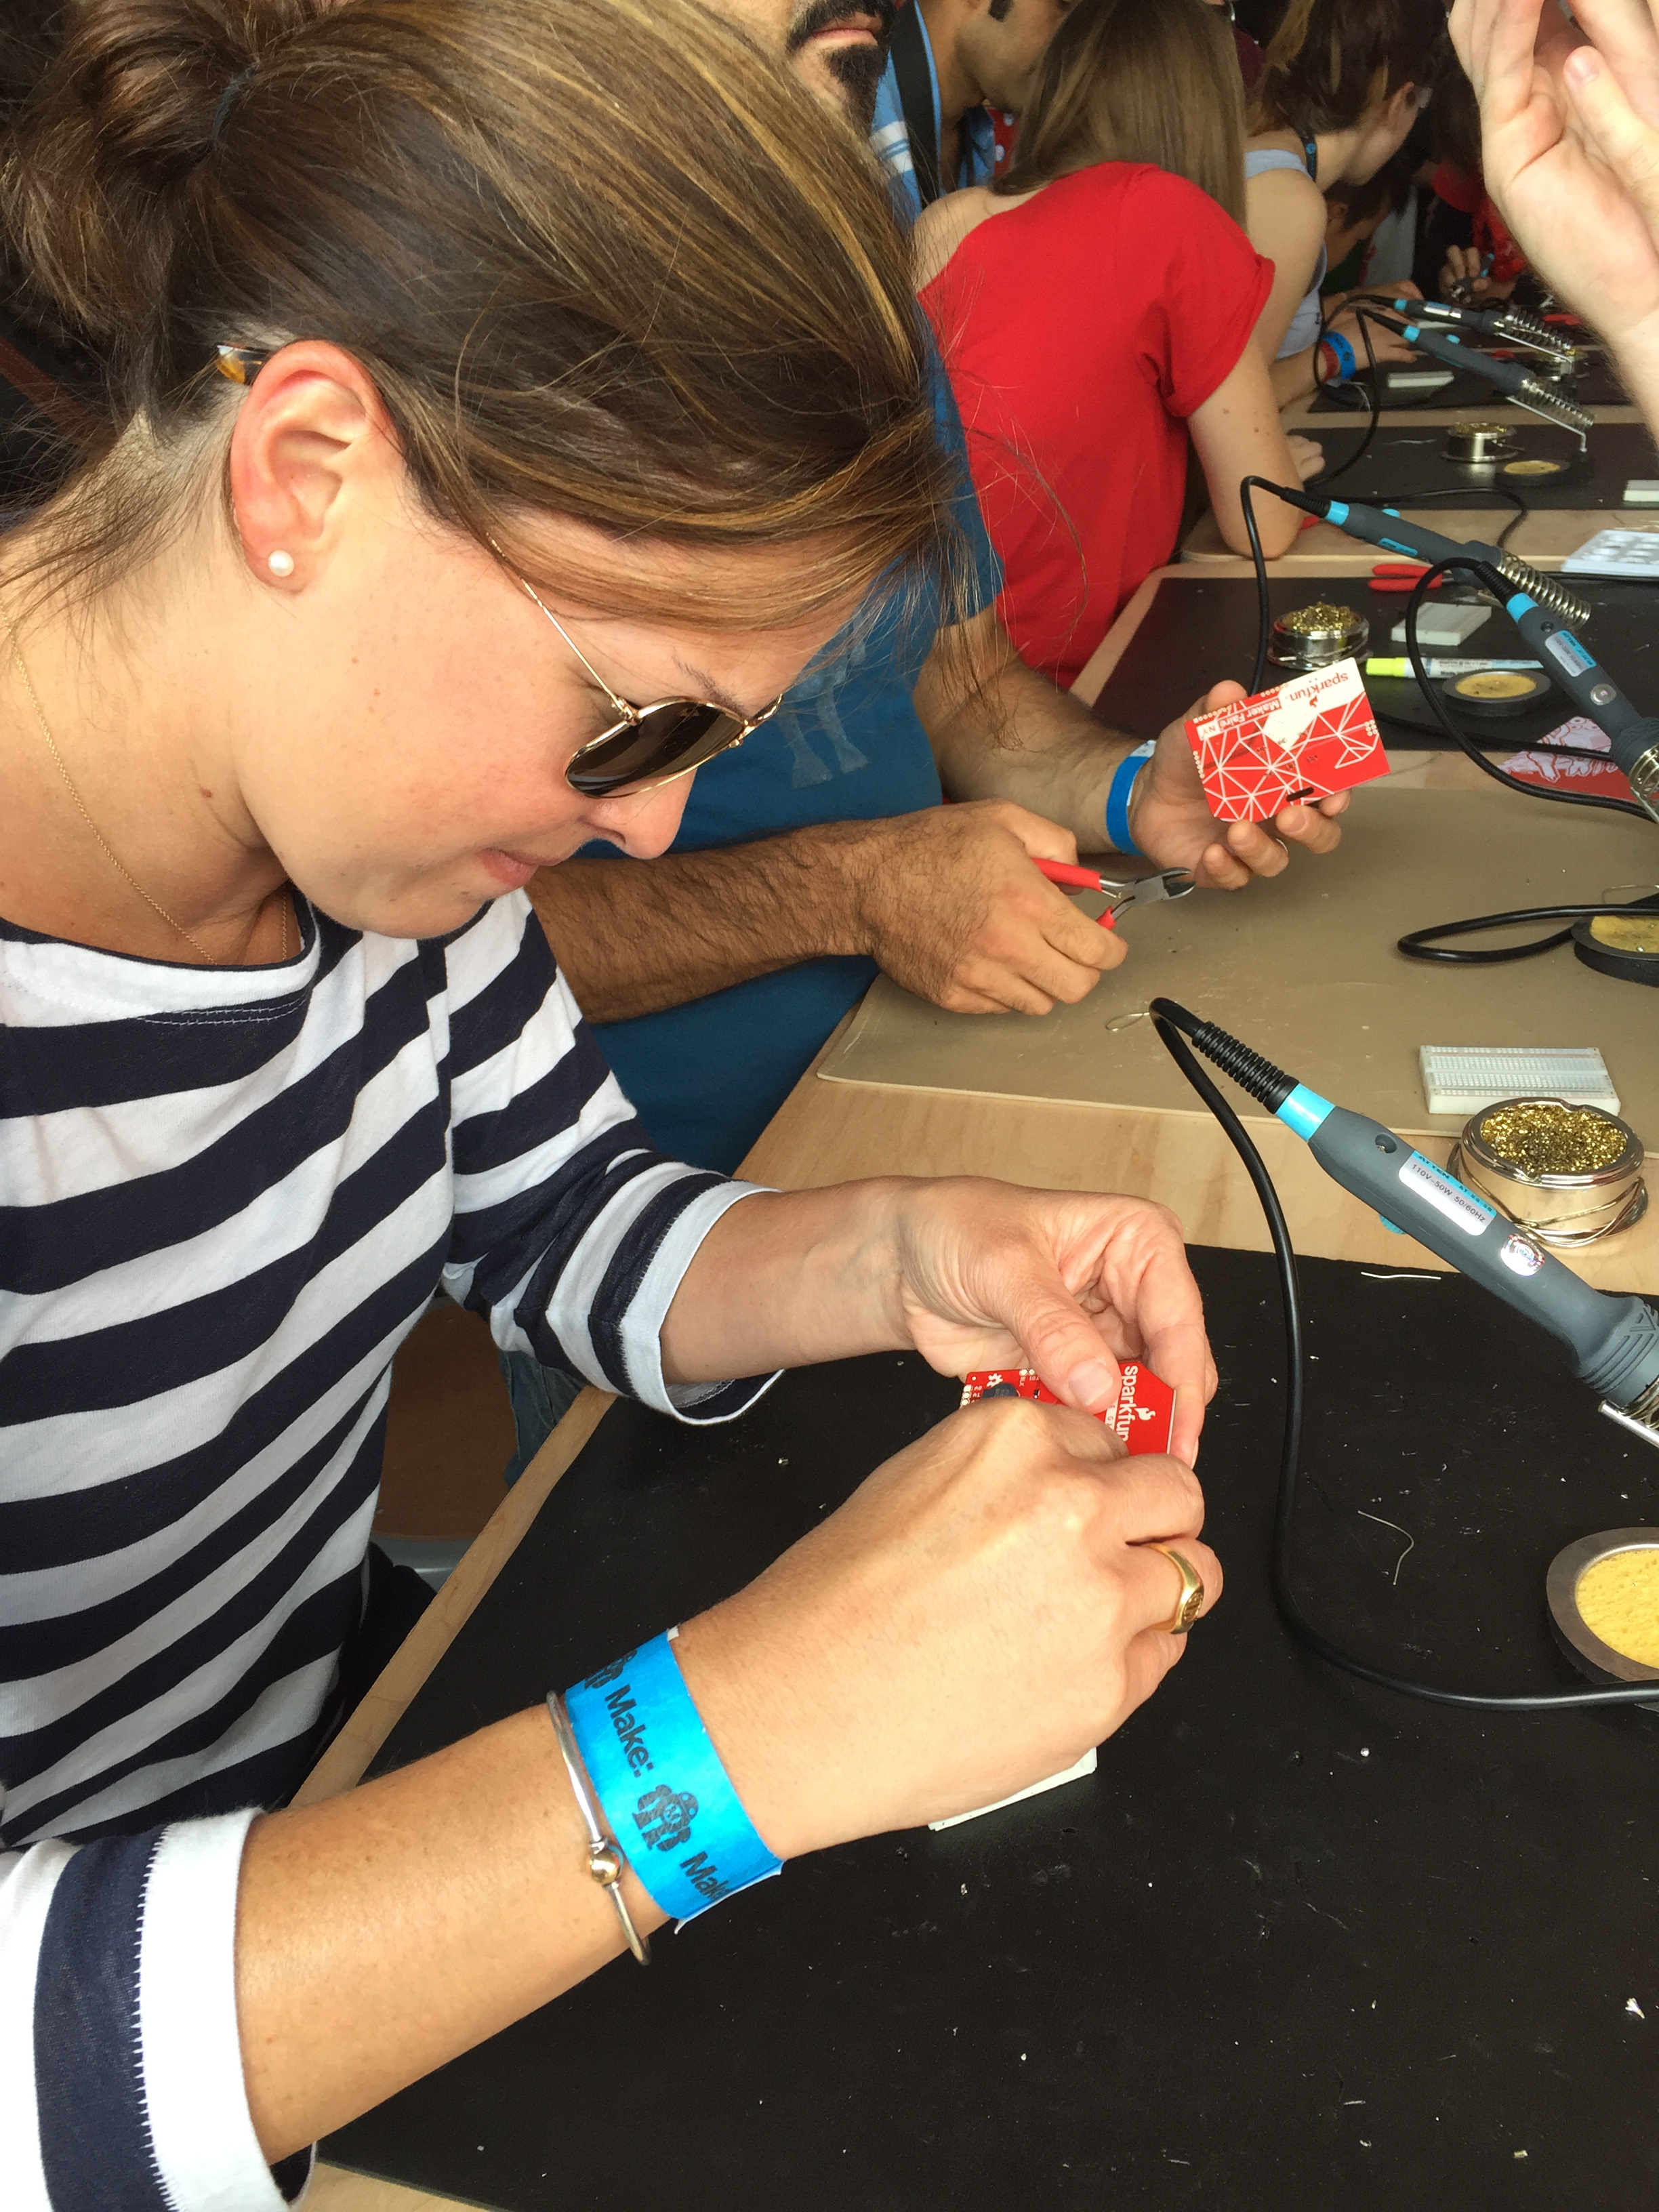 Soldering a name badge at Makerfaire.